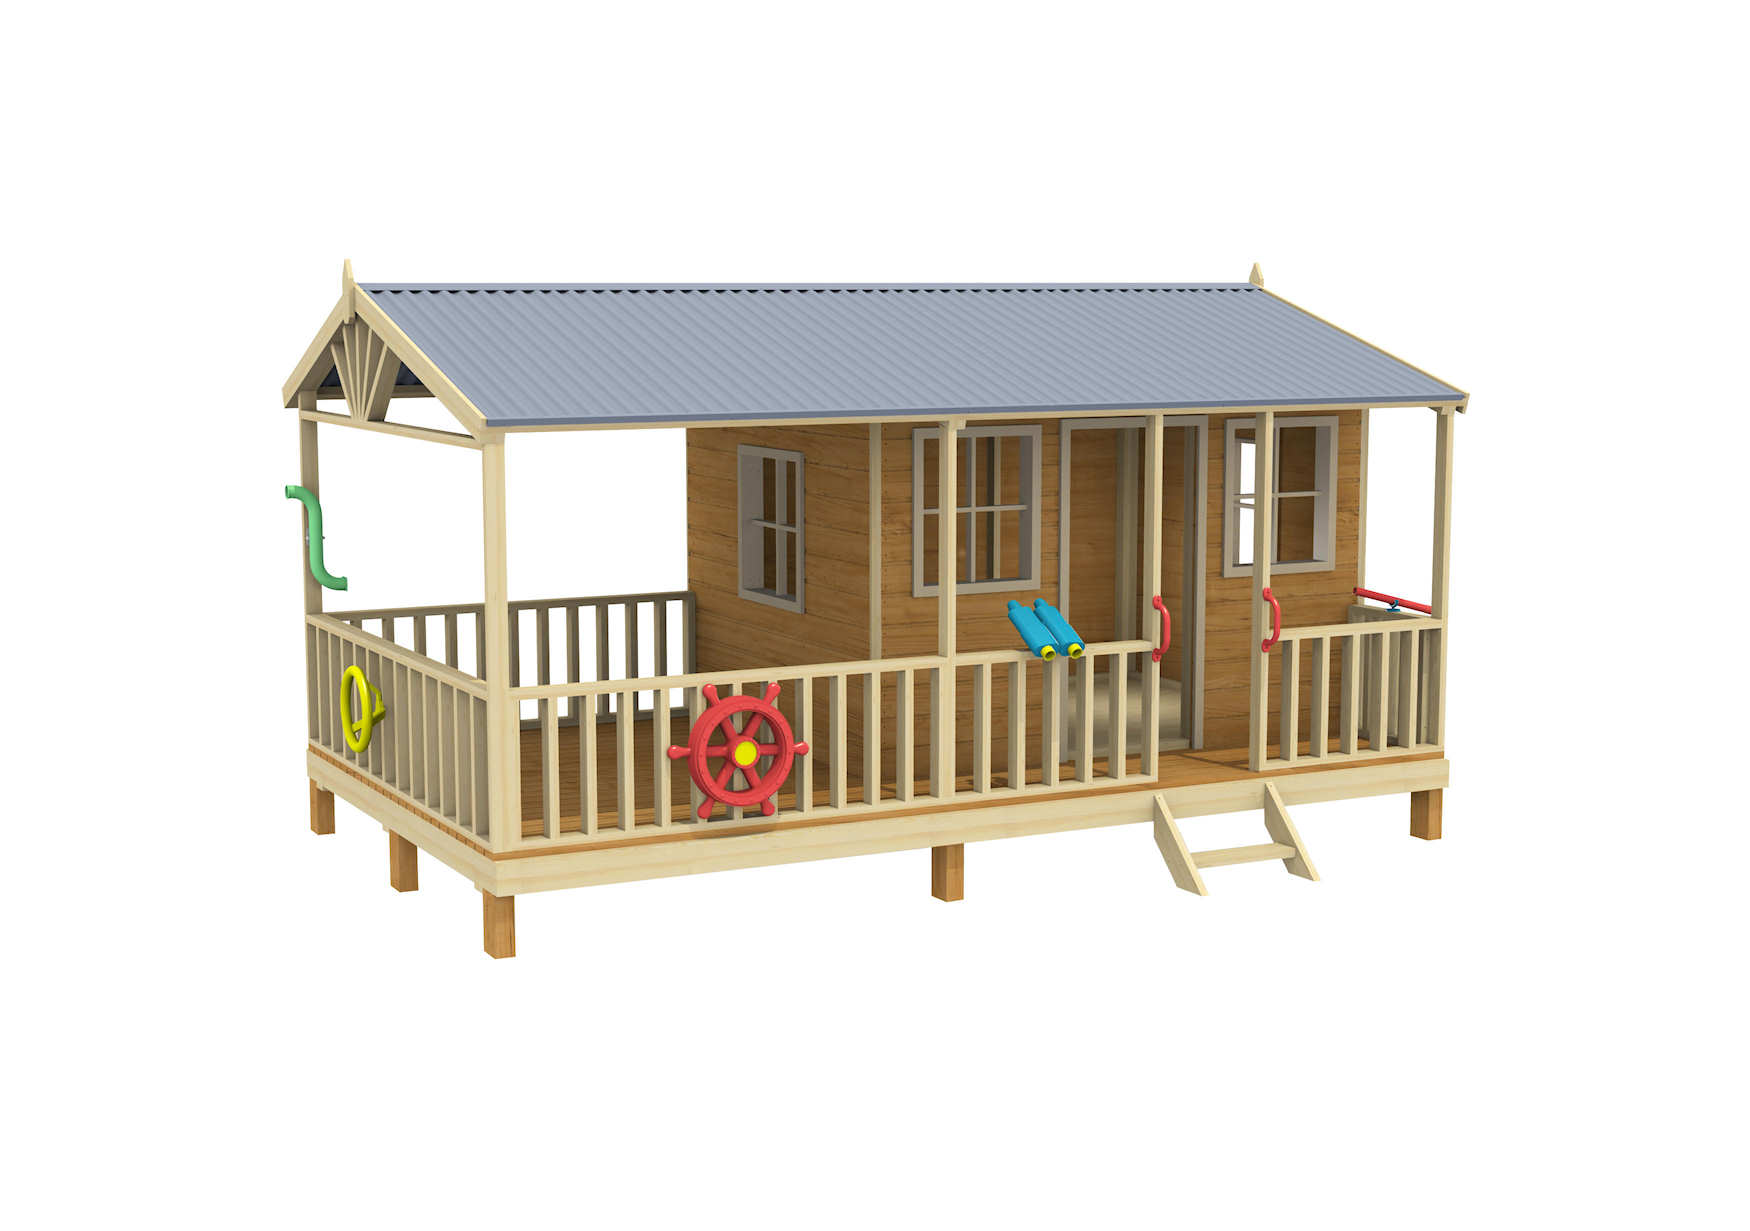 cool tree houses, backyard playsets, cubby house, Tumbleweed Lodge